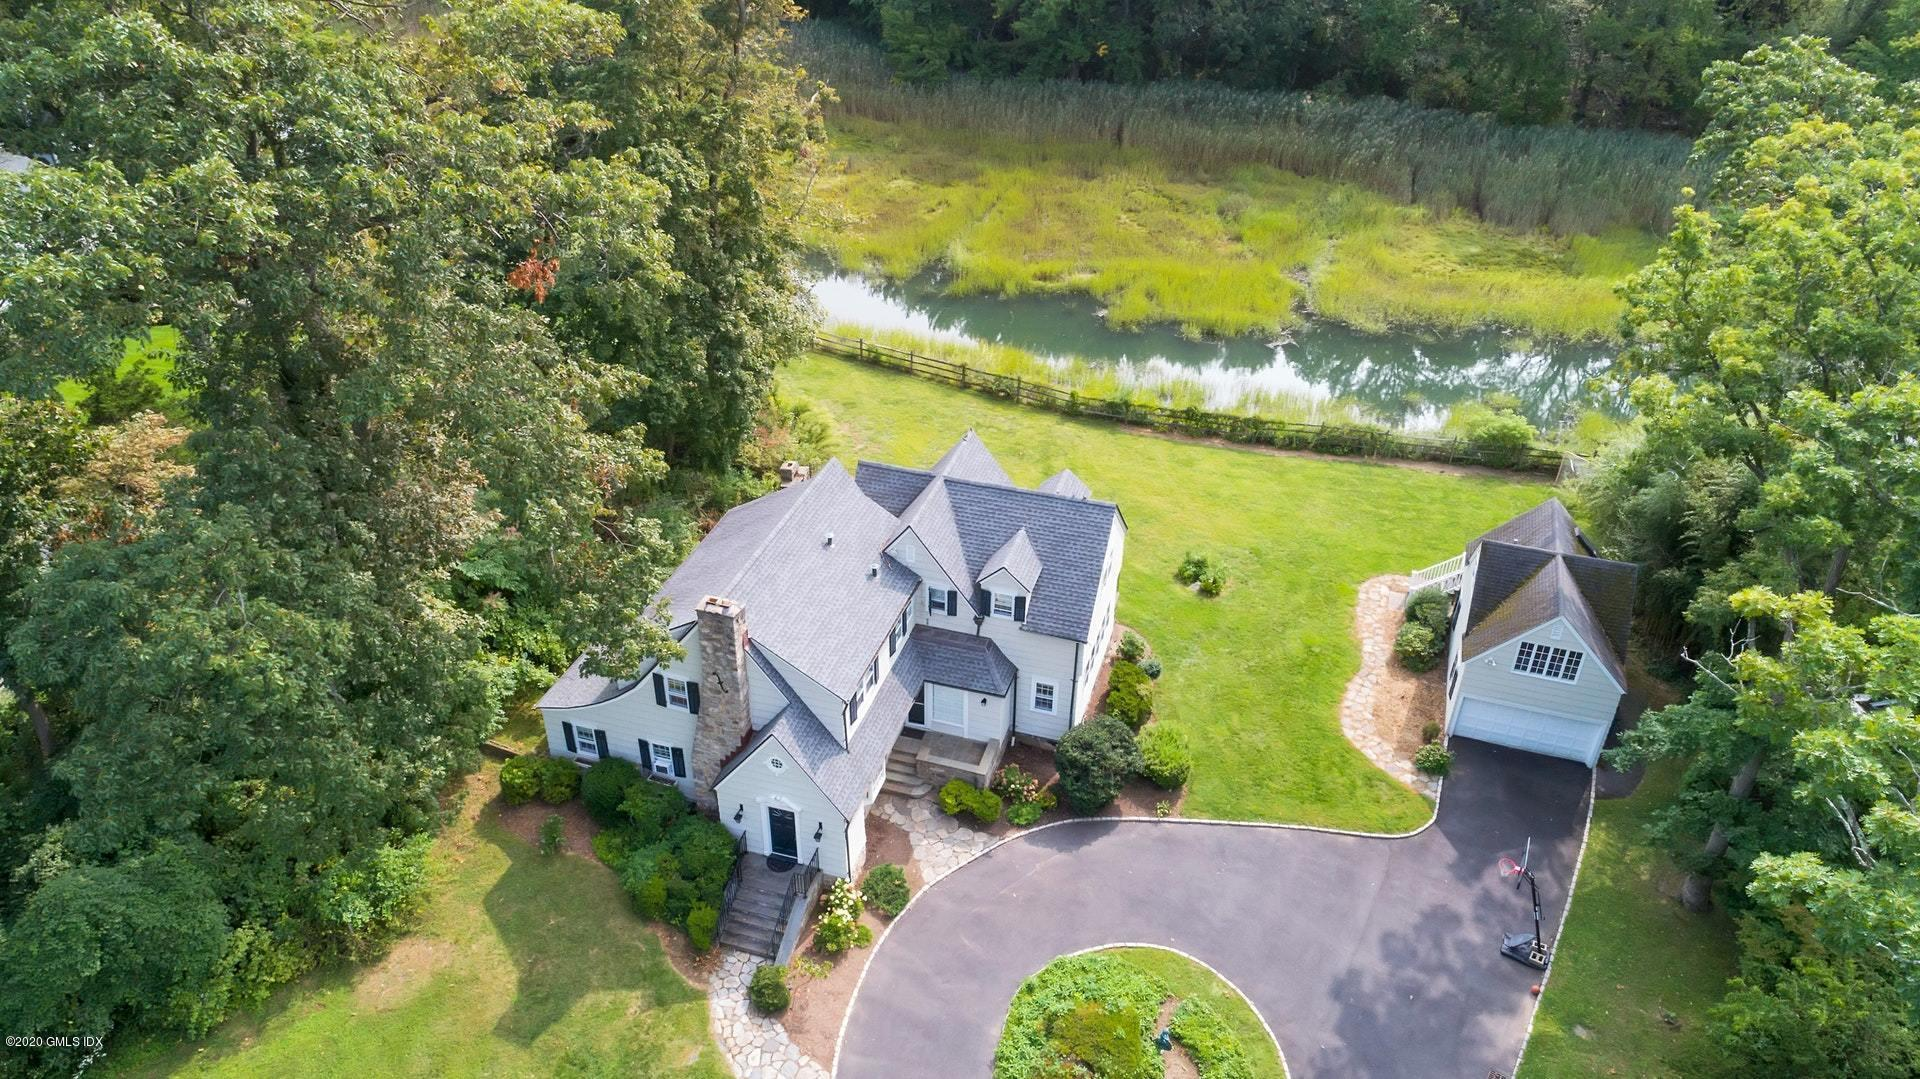 14 Indian Chase Drive, Greenwich, Connecticut 06830, 4 Bedrooms Bedrooms, ,2 BathroomsBathrooms,Single family,For sale,Indian Chase,111107